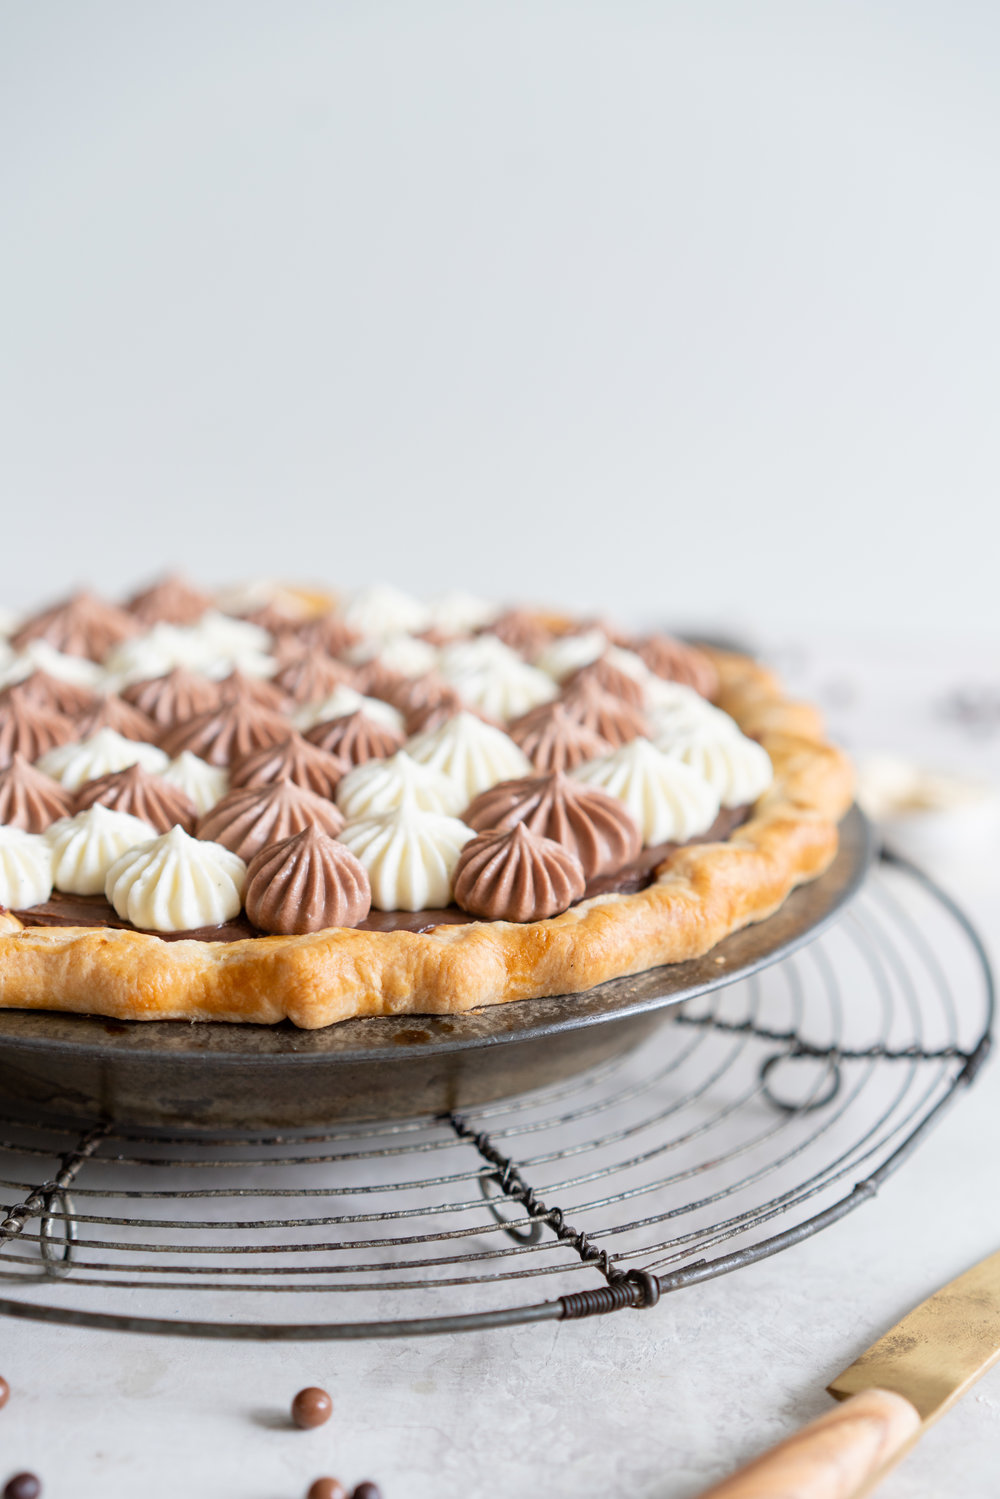 Malted Dark Chocolate Cream Pie with Cream Cheese Whip. A flaky pie crust is topped with a silky malted dark chocolate pudding, and topped with a chocolate and vanilla bean piped cream cheese whipped cream. #creamcheese #chocolatepie #maltedmilk